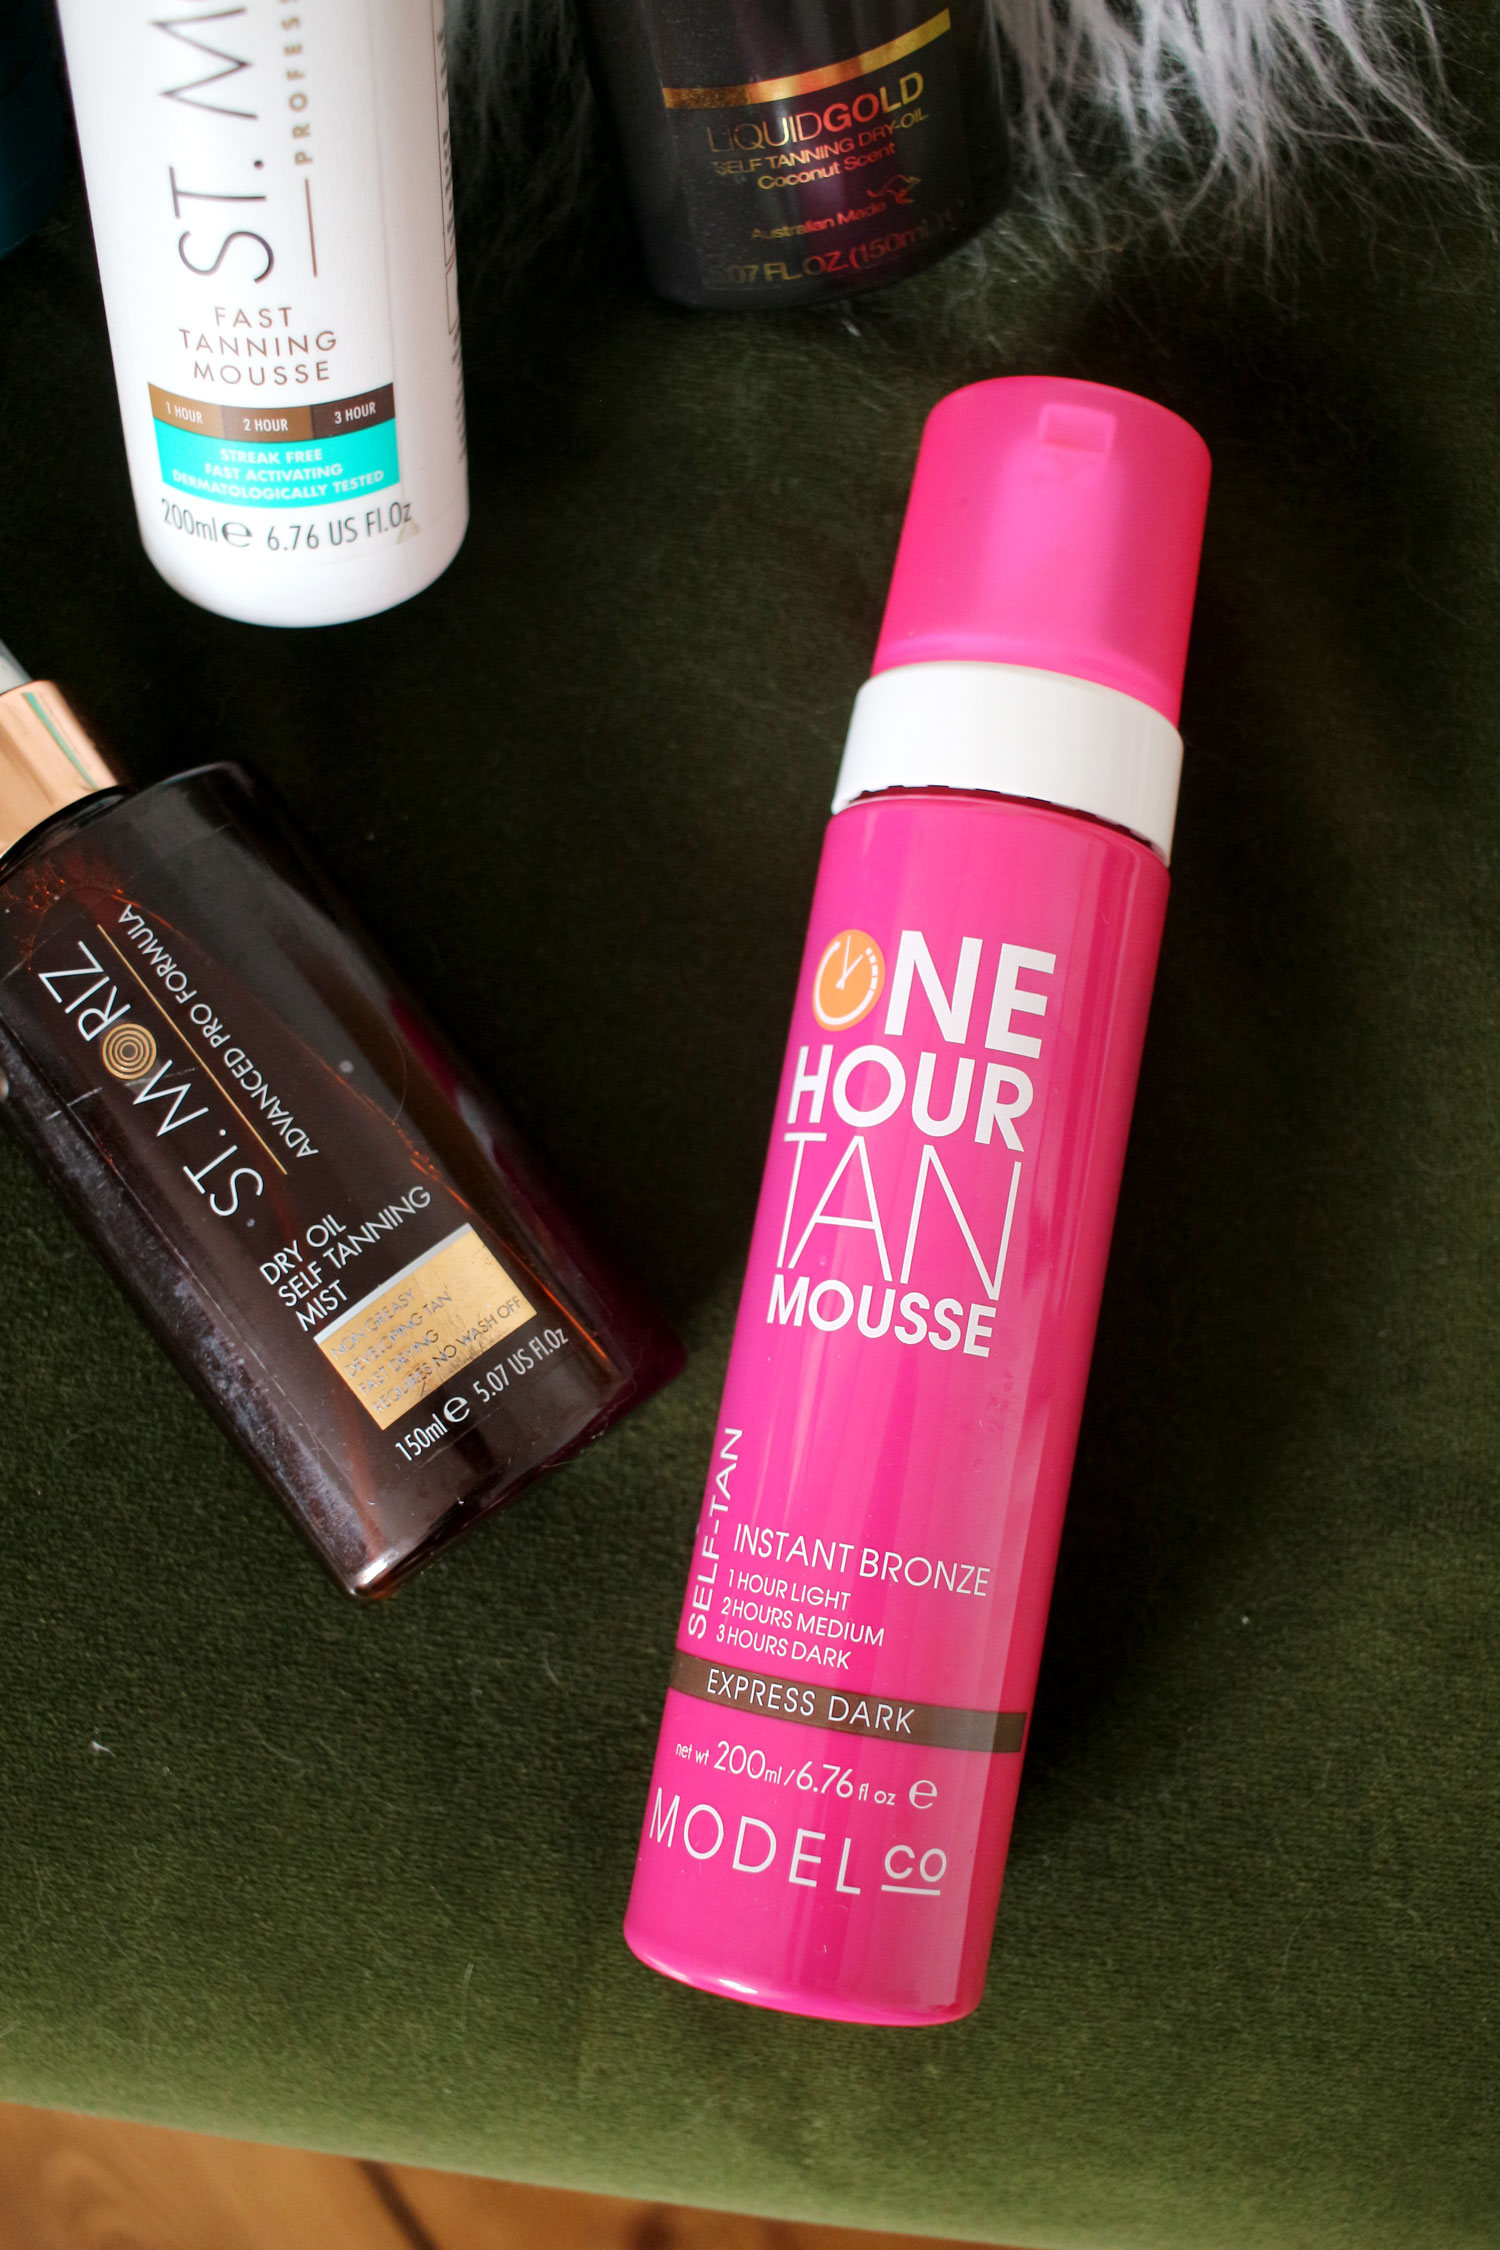 best-false-tan-under-20-modelco-one-hour-mousse-review